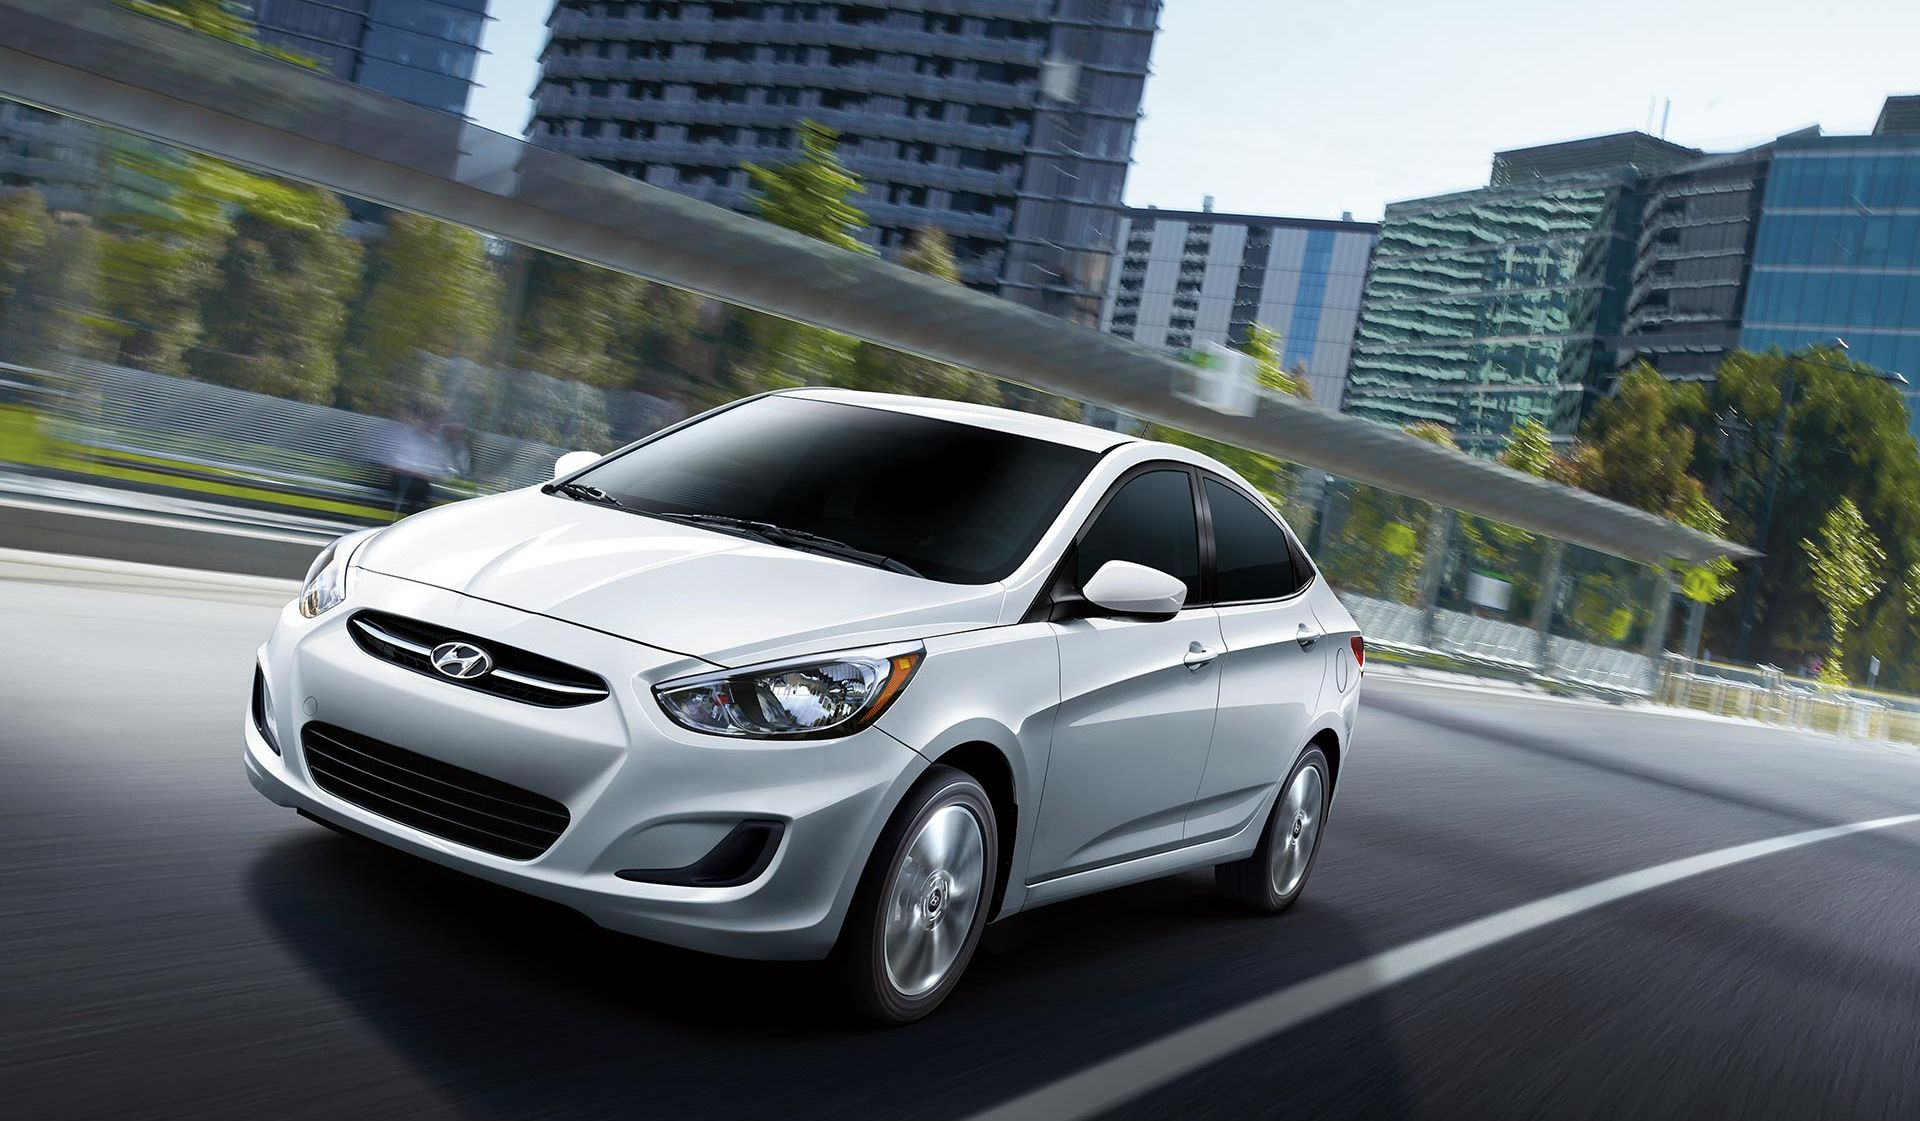 2017 Hyundai Accent for Sale in Capitol Heights, MD